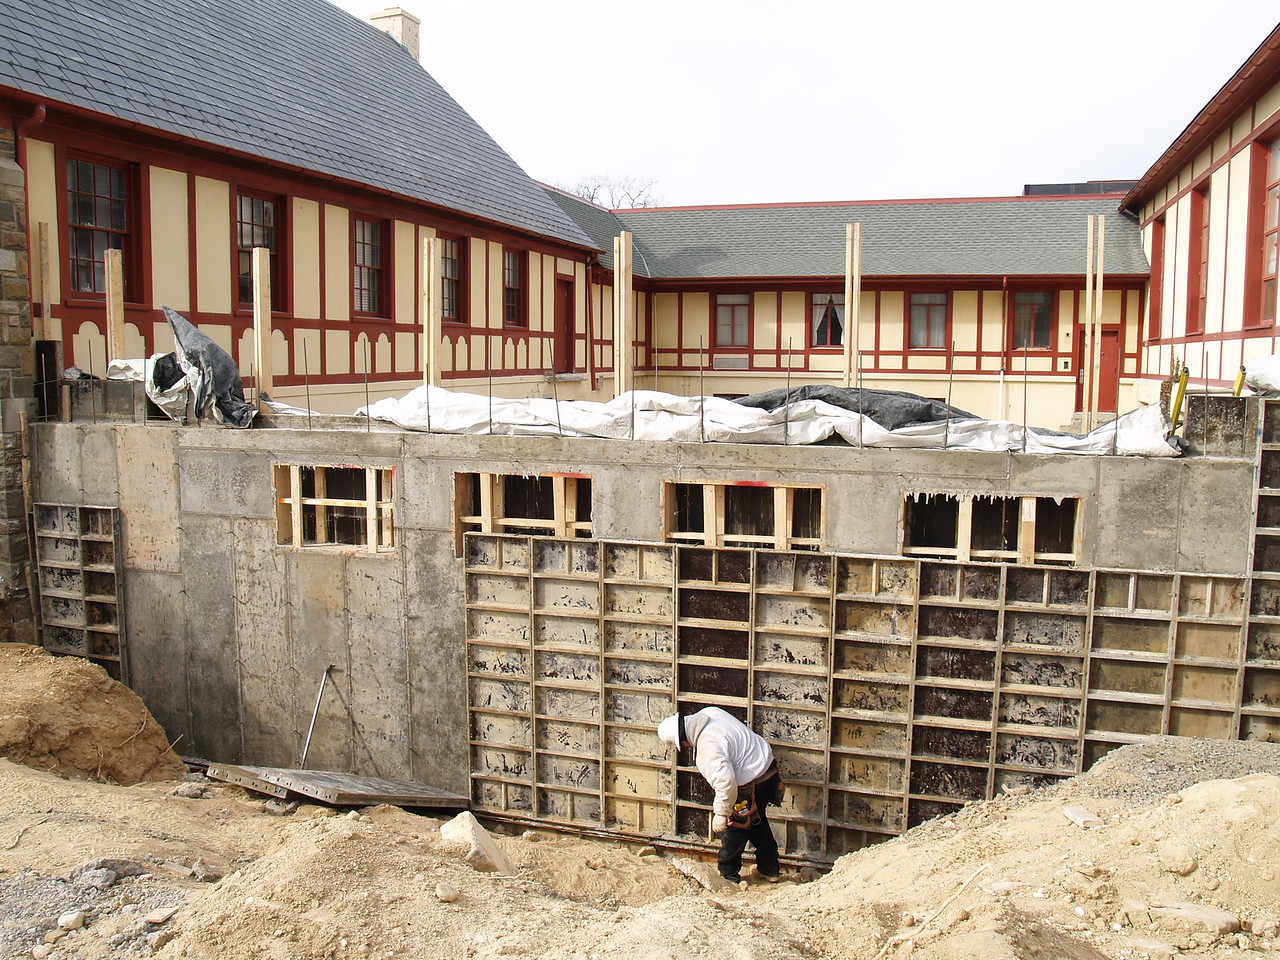 2/12/2007: Courtyard wall is completed.  The molds for the concrete are being removed.